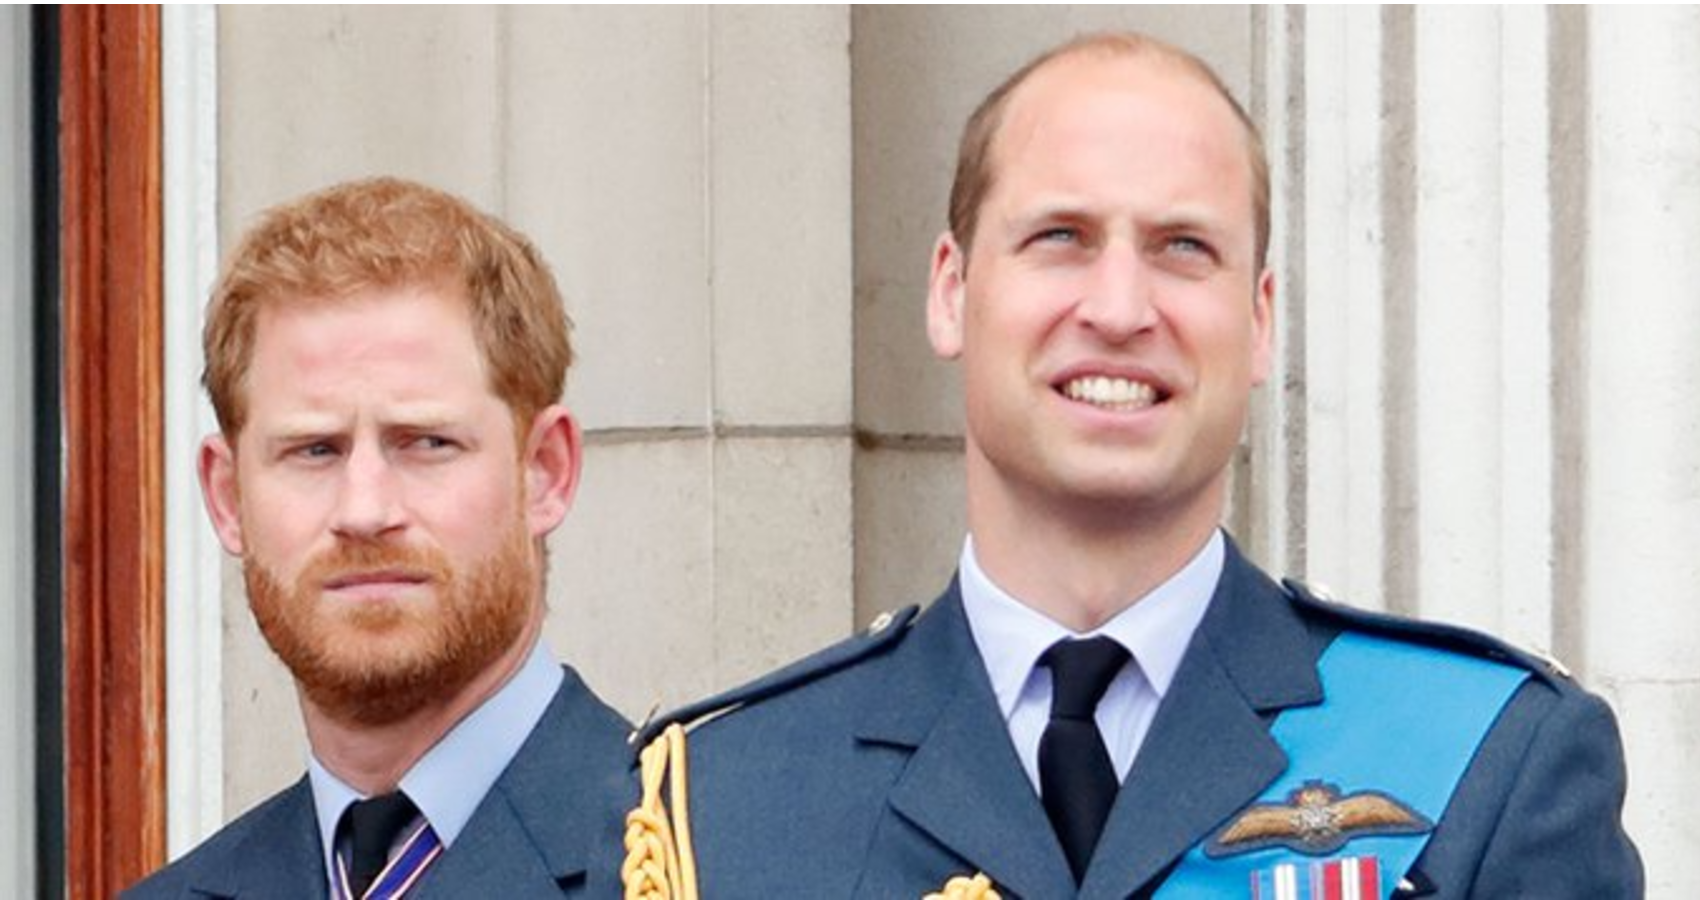 Prince William Tried To Avoid Lunch With Prince Harry, Book Reveals